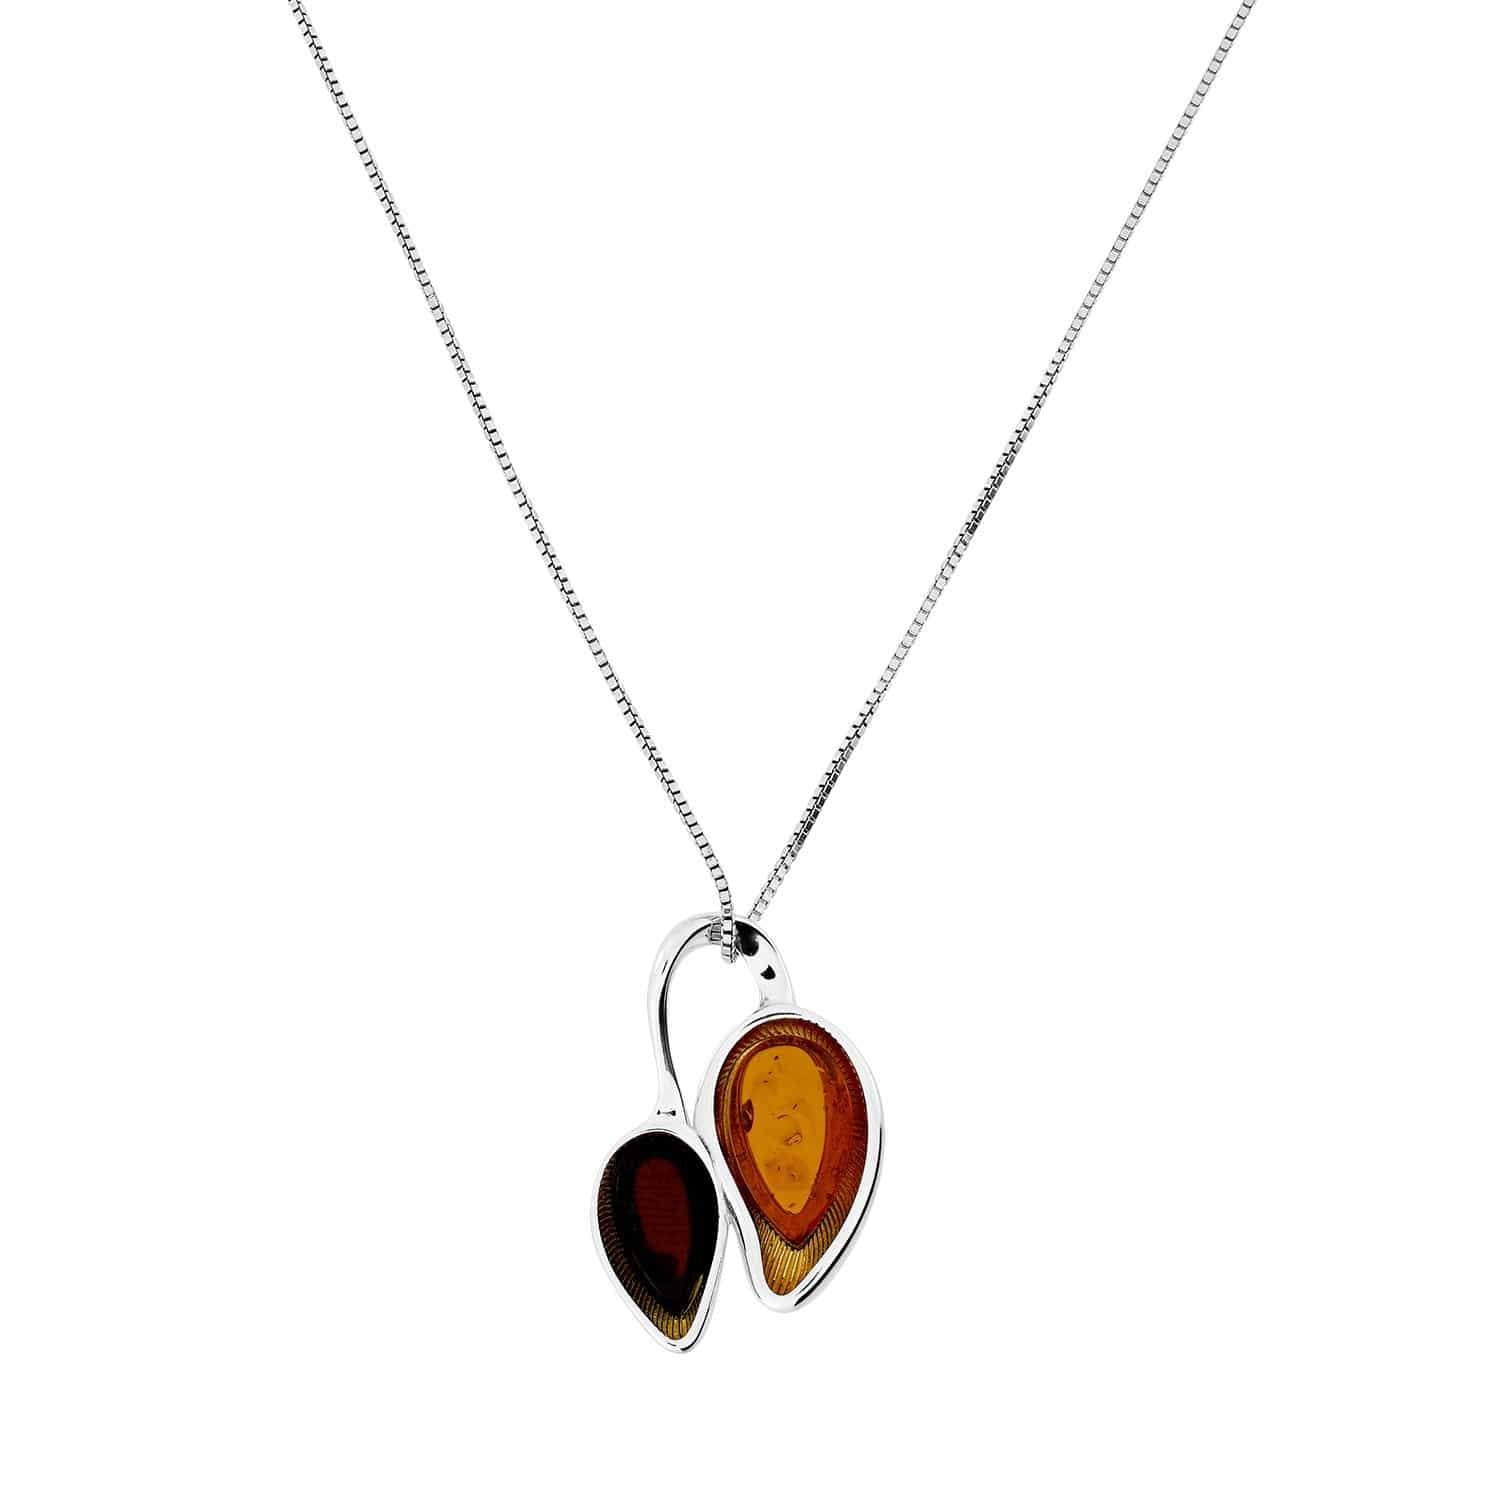 Silver Amber Double Necklace with Gold Vermeil Setting